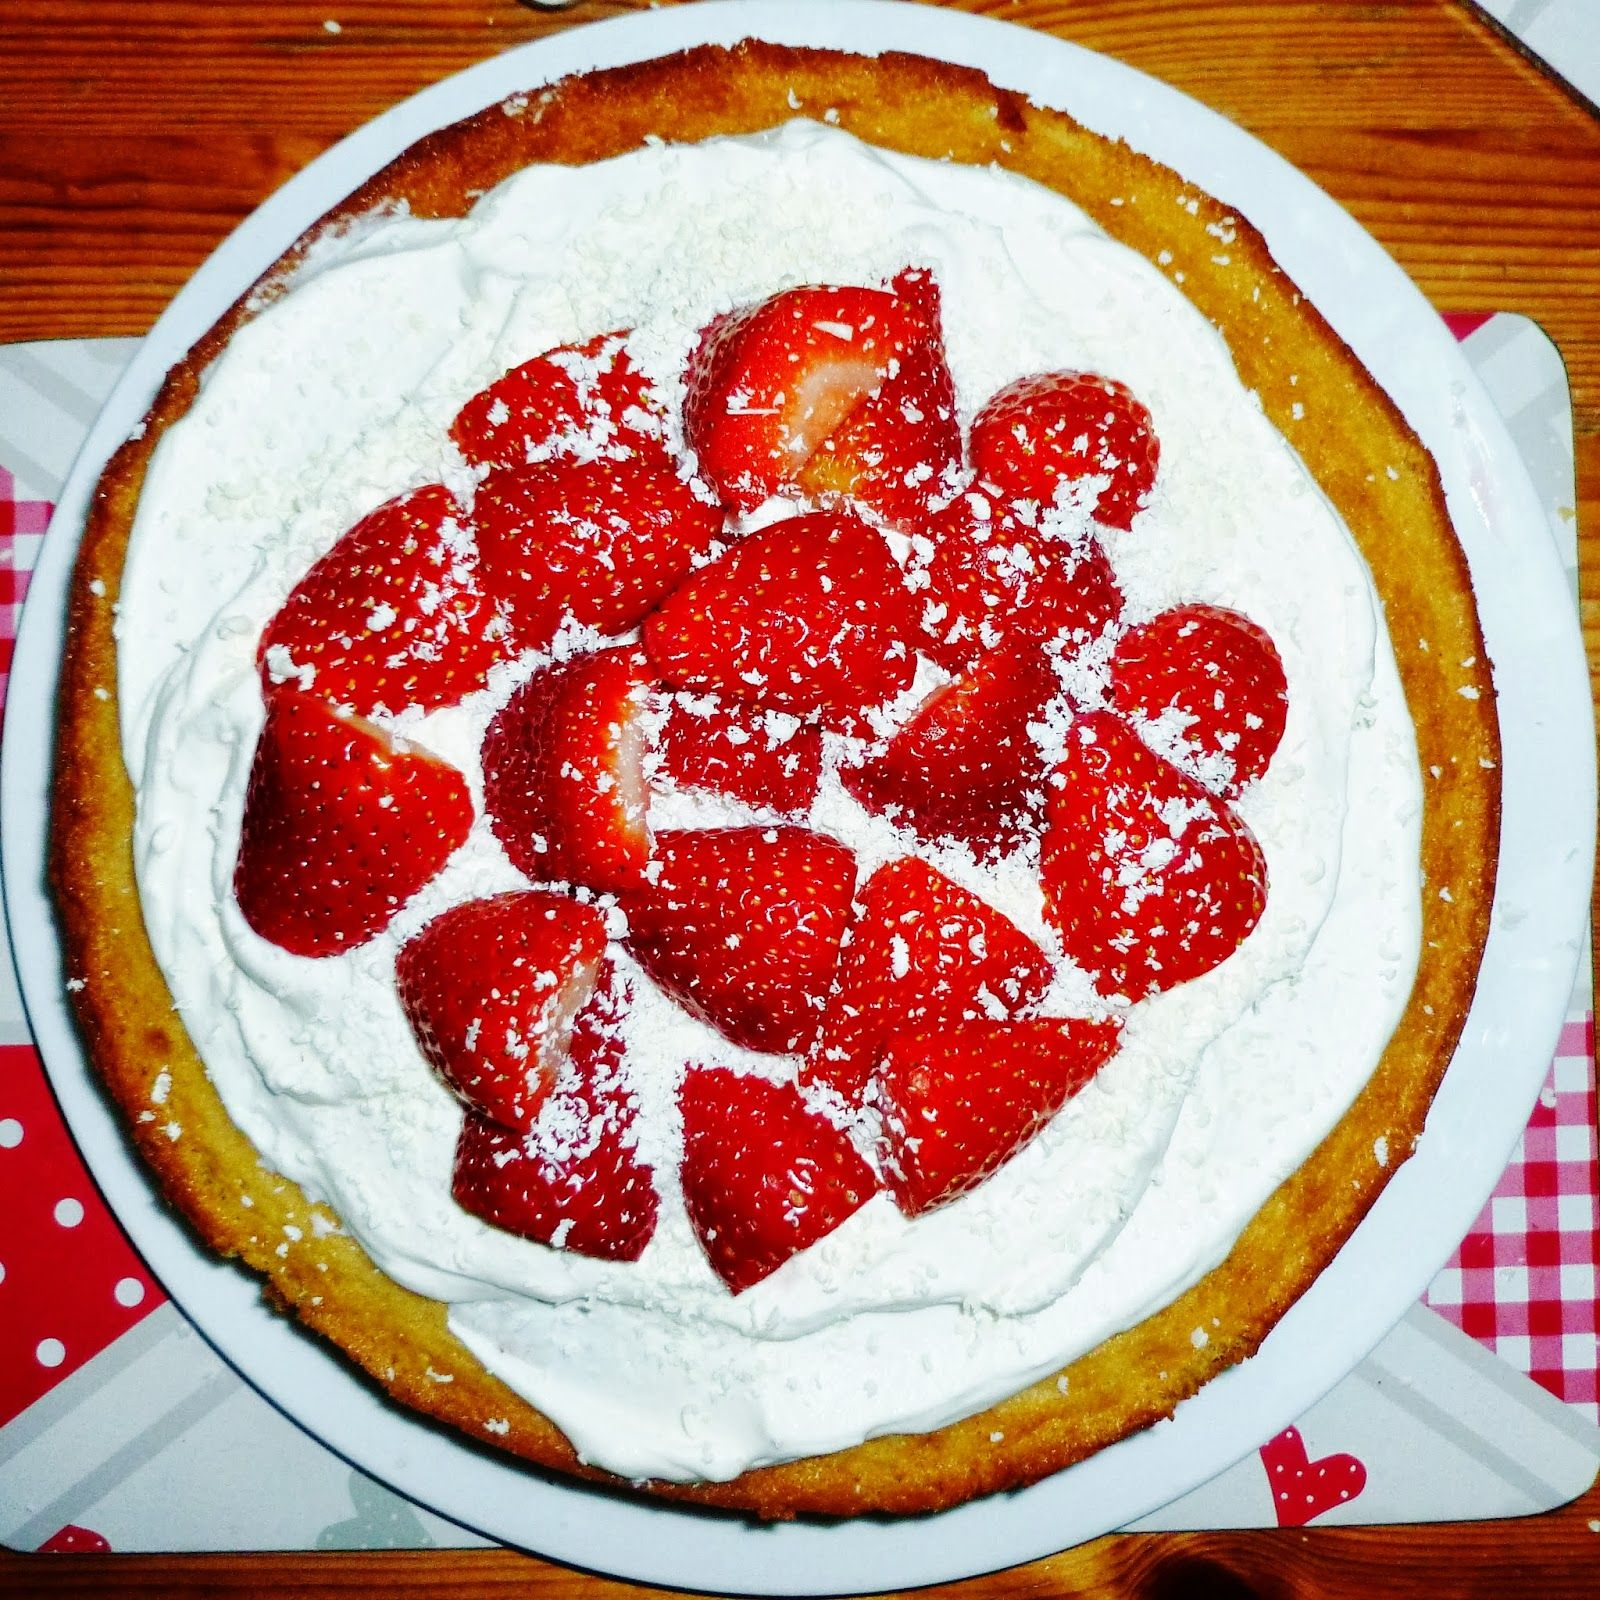 Strawberries and Cream White Chocolate Cake